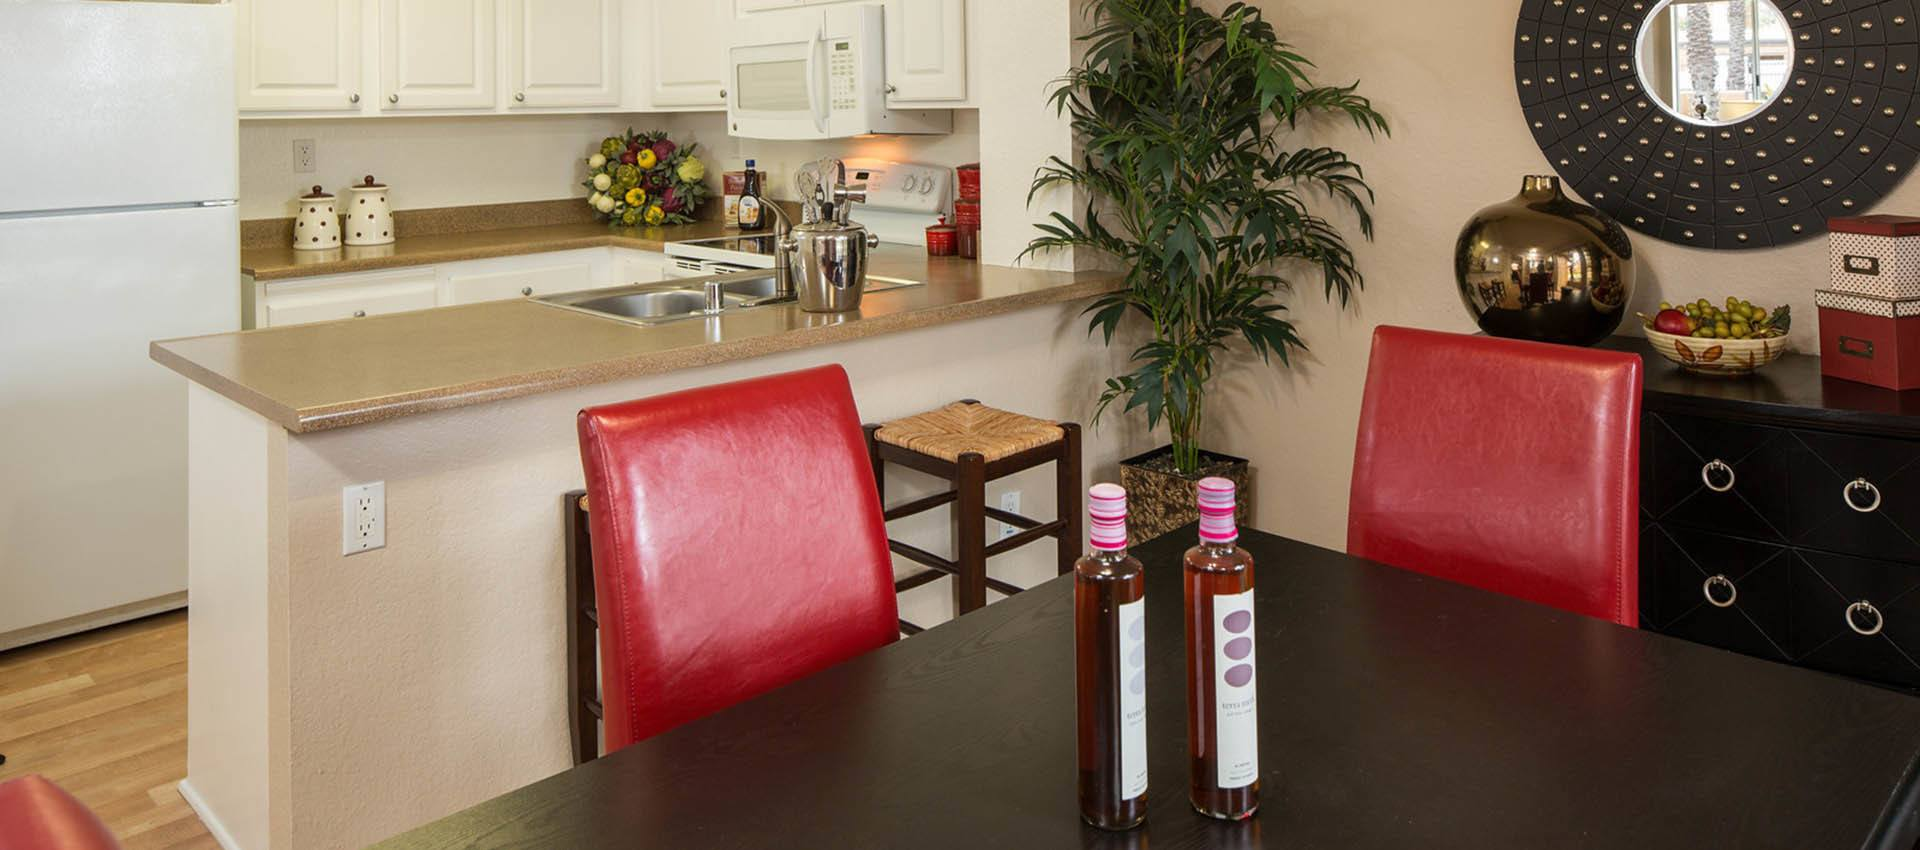 Dining And Kitchen Area at Hidden Hills Condominium Rentals in Laguna Niguel, CA